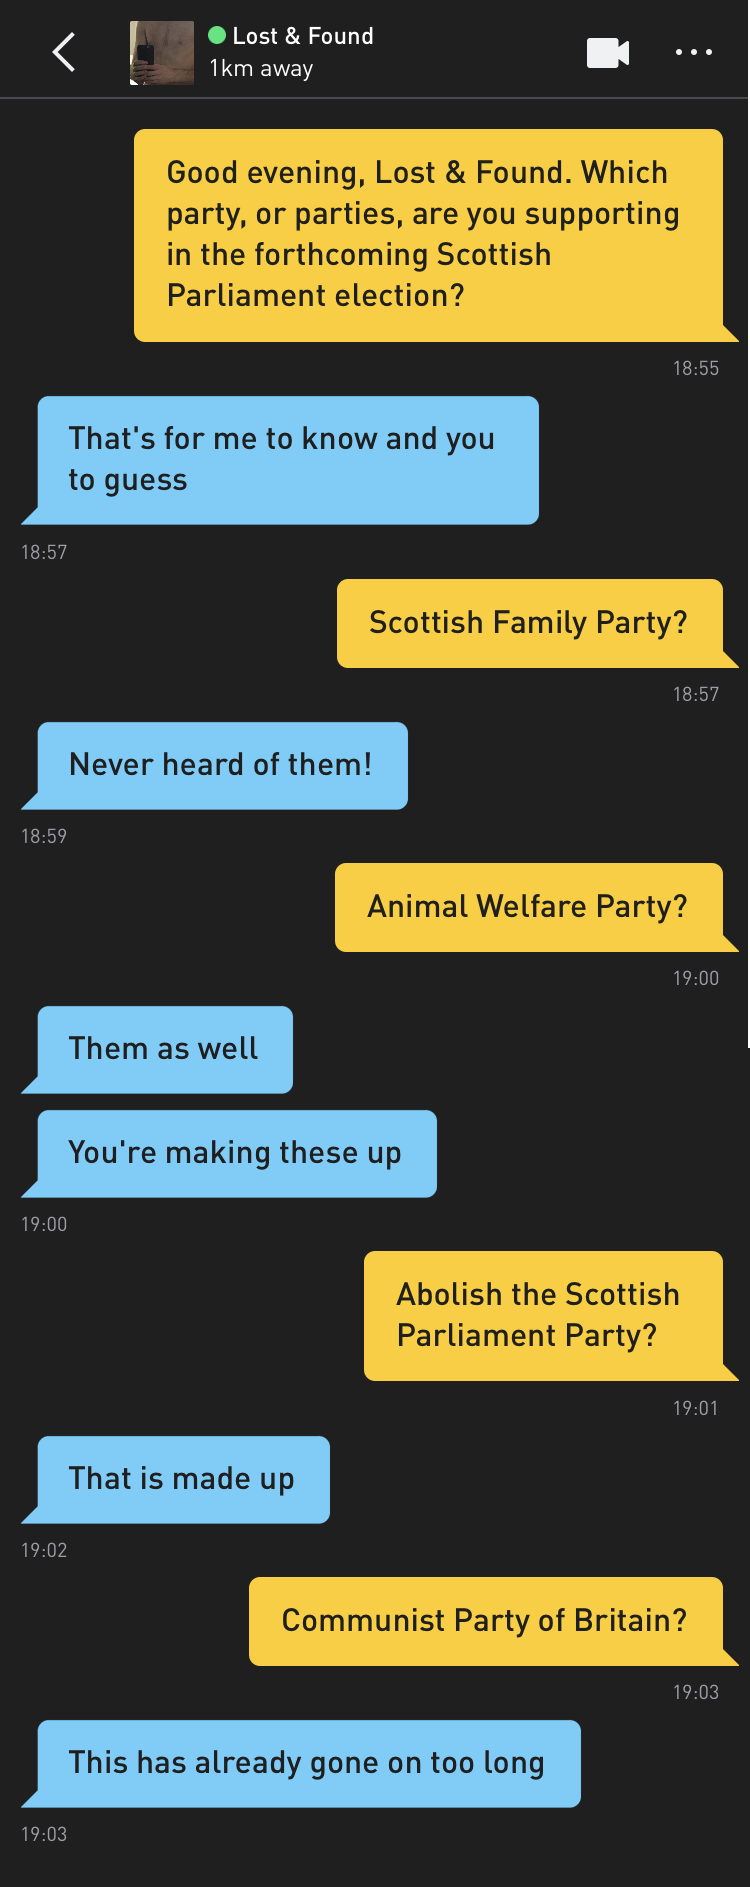 Me: Good evening, Lost & Found. Which party, or parties, are you supporting in the forthcoming Scottish Parliament election? Lost & Found: That's for me to know and you to guess Me: Scottish Family Party? Lost & Found: Never heard of them! Me: Animal Welfare Party? Lost & Found: Them as well Lost & Found: You're making these up Me: Abolish the Scottish Parliament Party? Lost & Found: That is made up Me: Communist Party of Britain? Lost & Found: This has already gone on too long